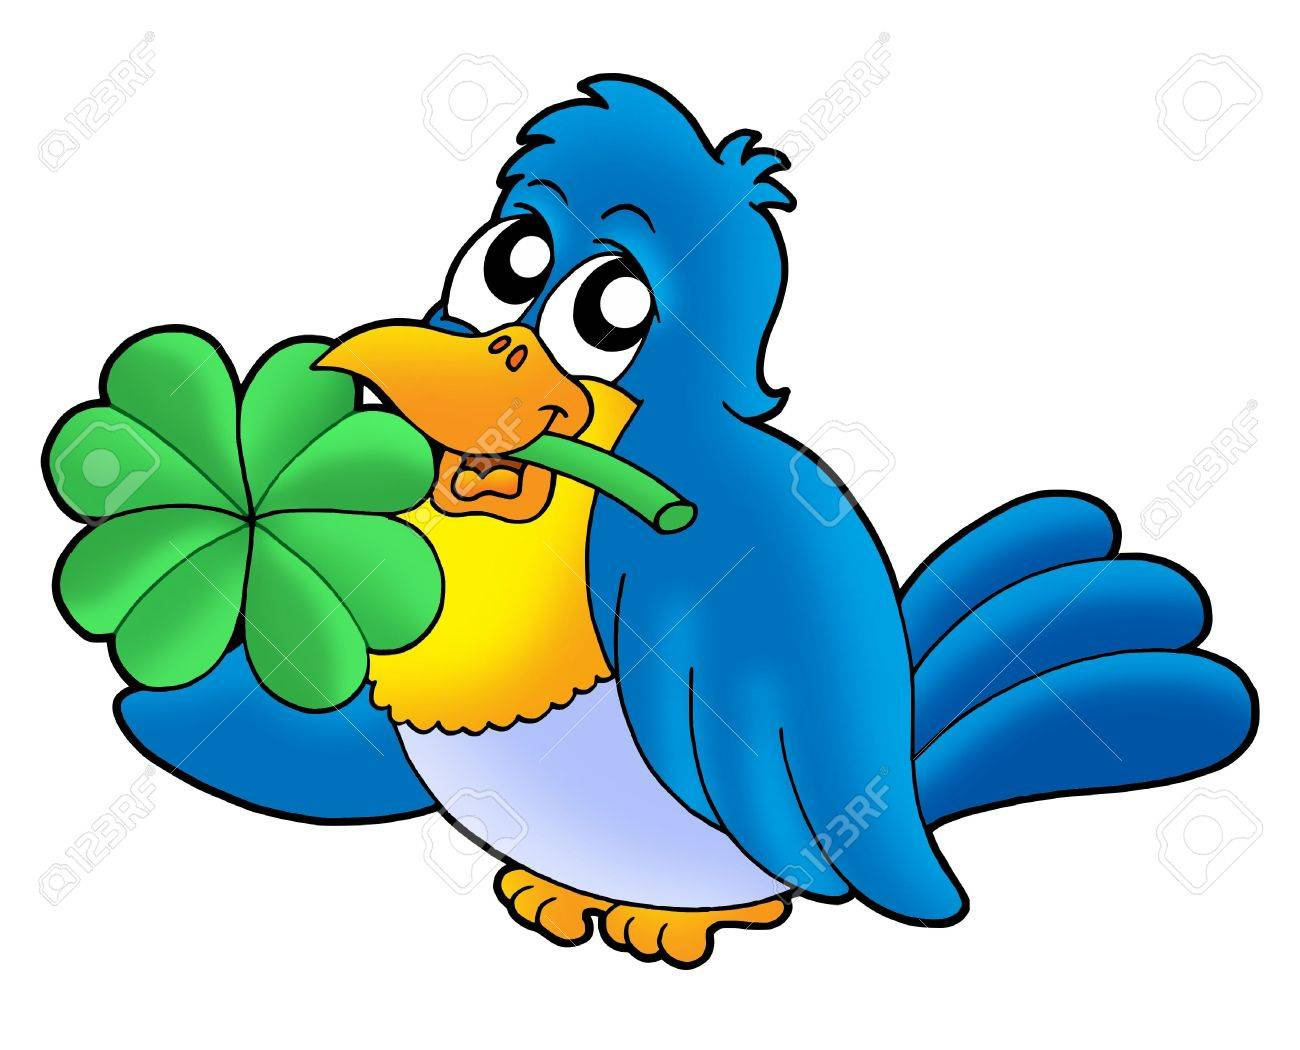 Bird with four leaves clover - color illustration. Stock Illustration - 3446286